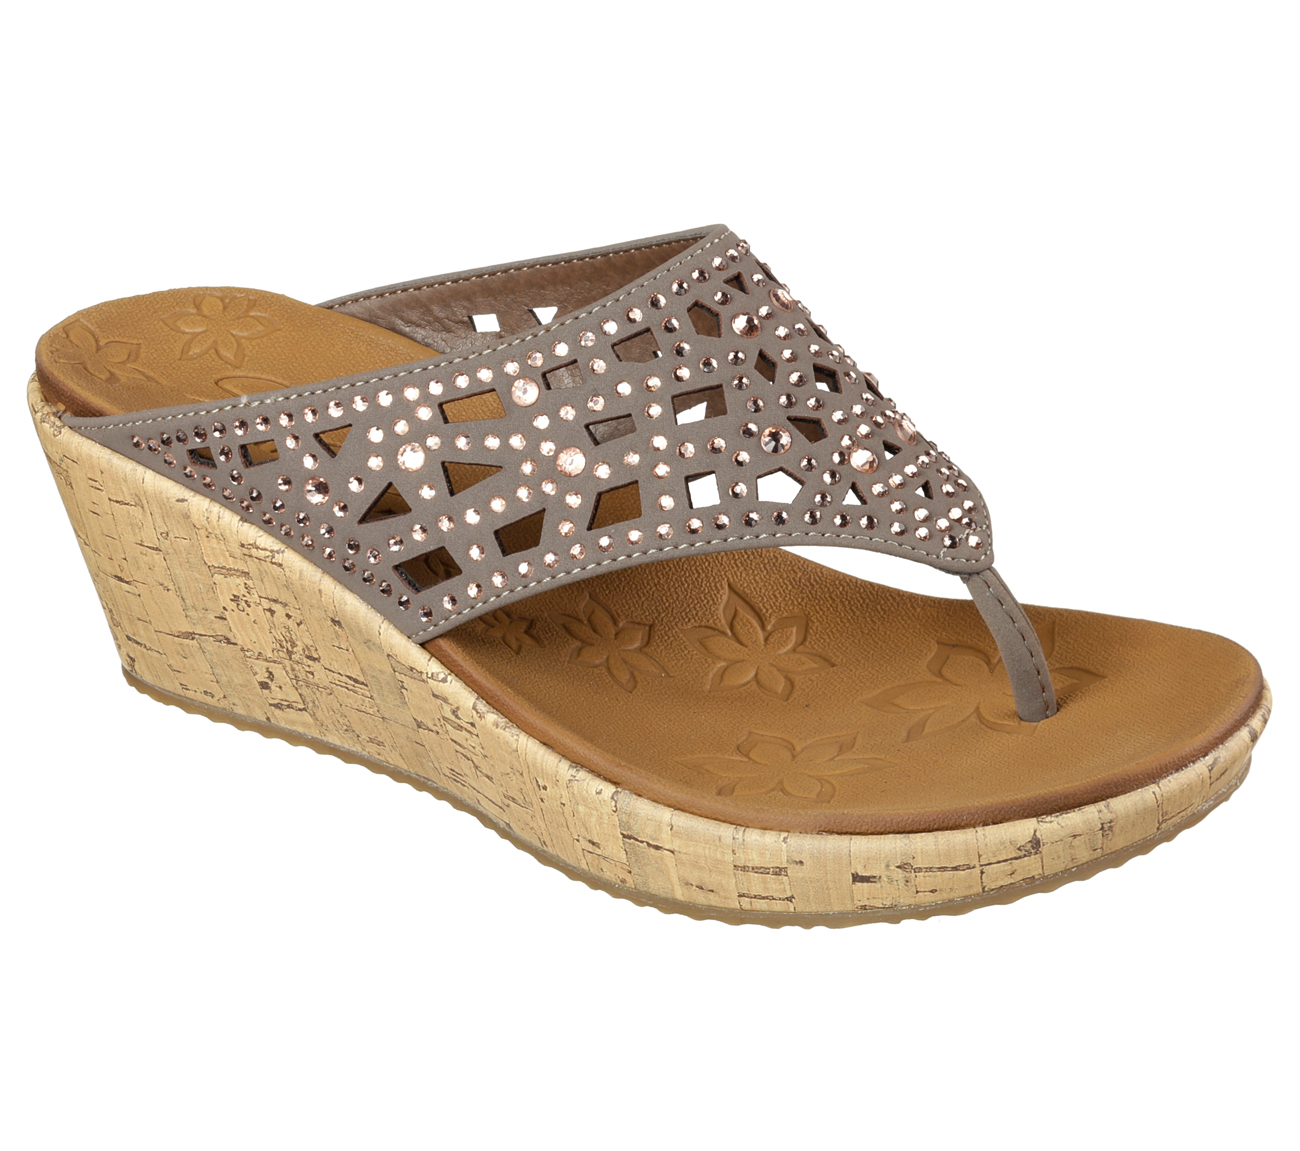 Buy Skechers Beverlee Dazzled Thong Sandals Shoes Only